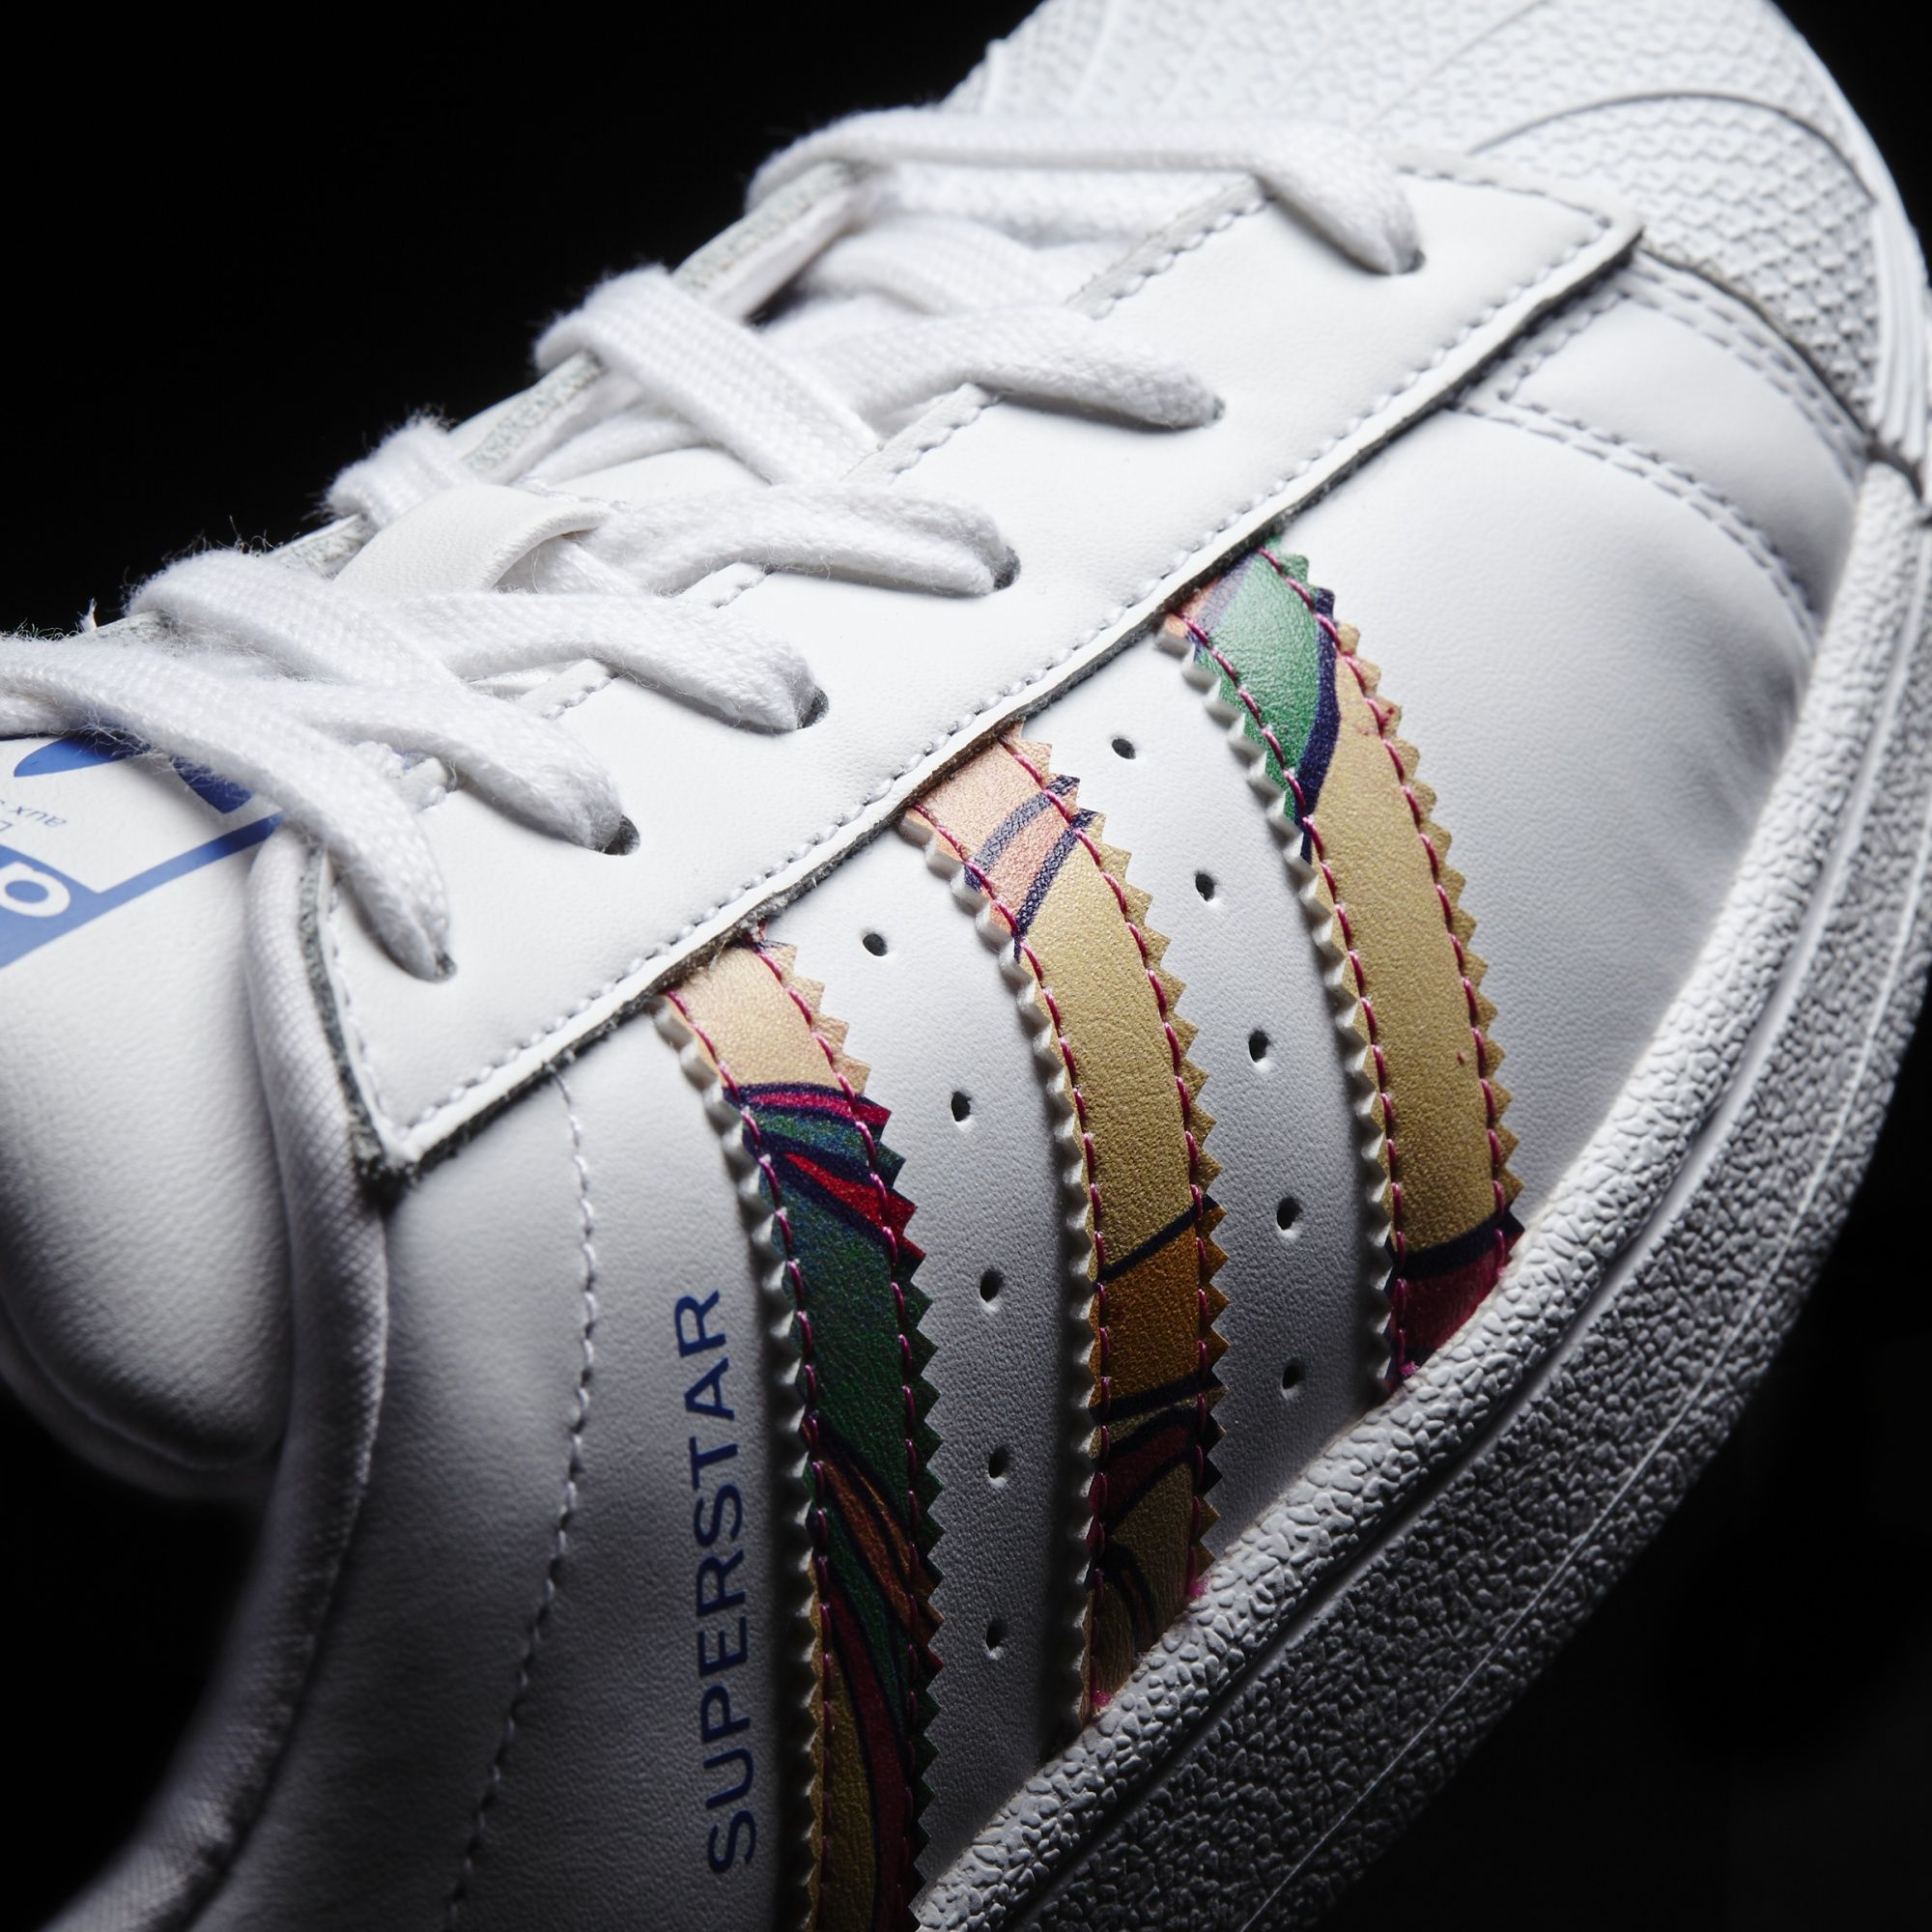 BAPE x Neighborhood x adidas Superstar Boost Sneaker Freaker